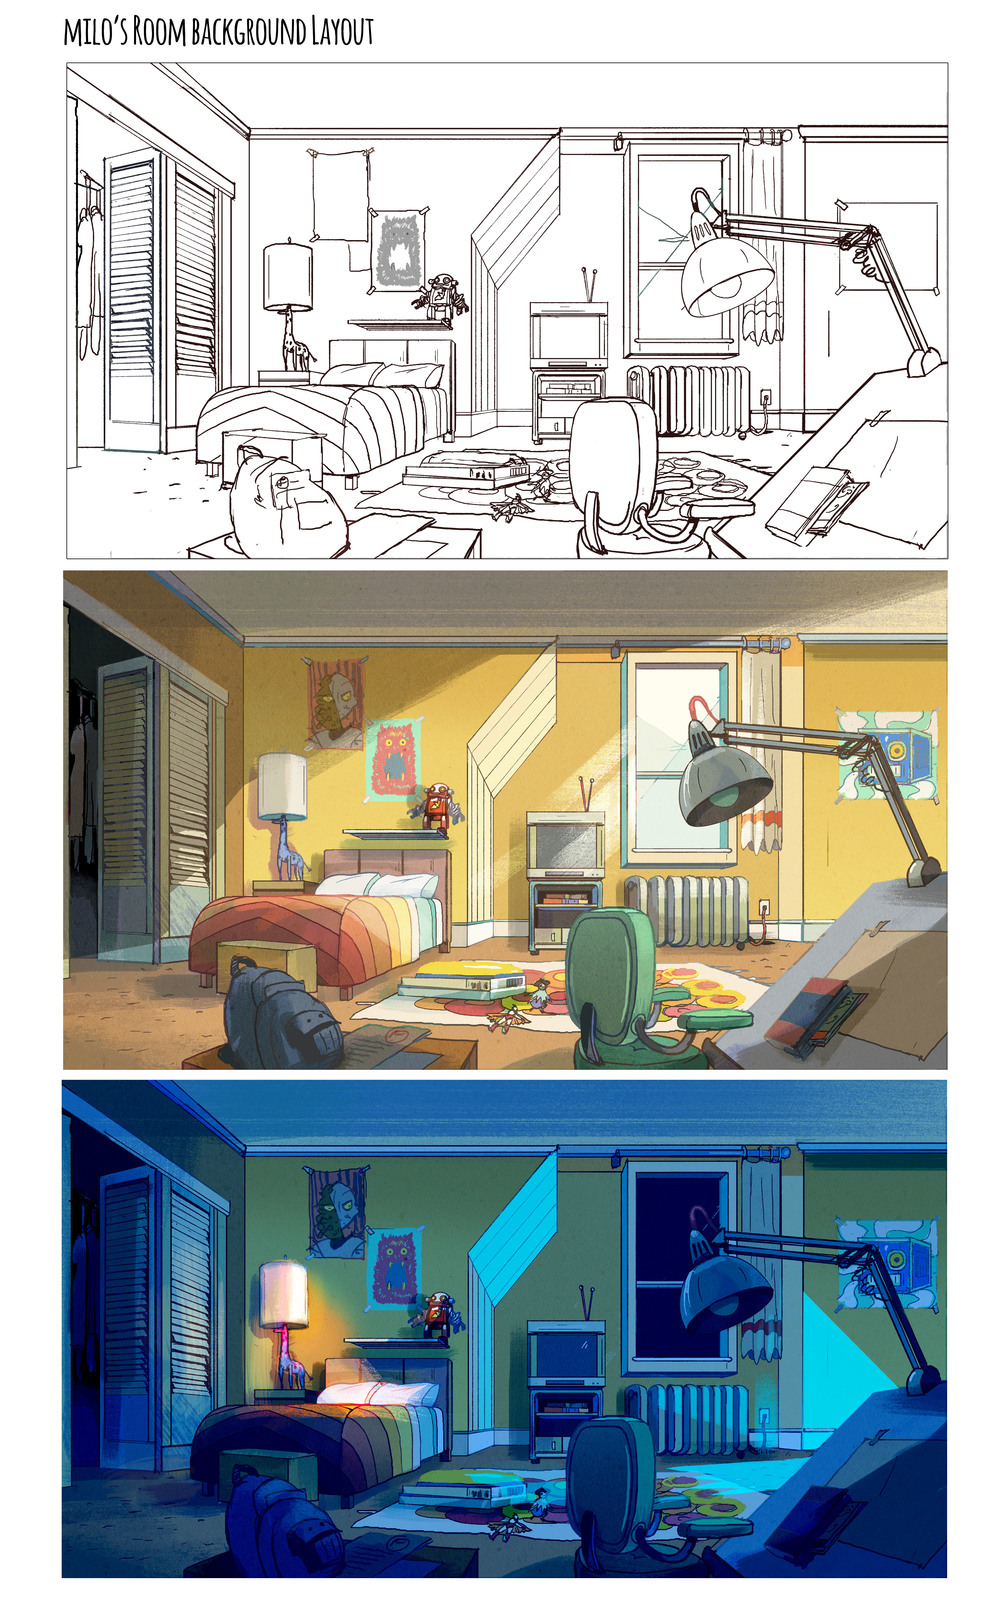 milo's room page layout.jpg